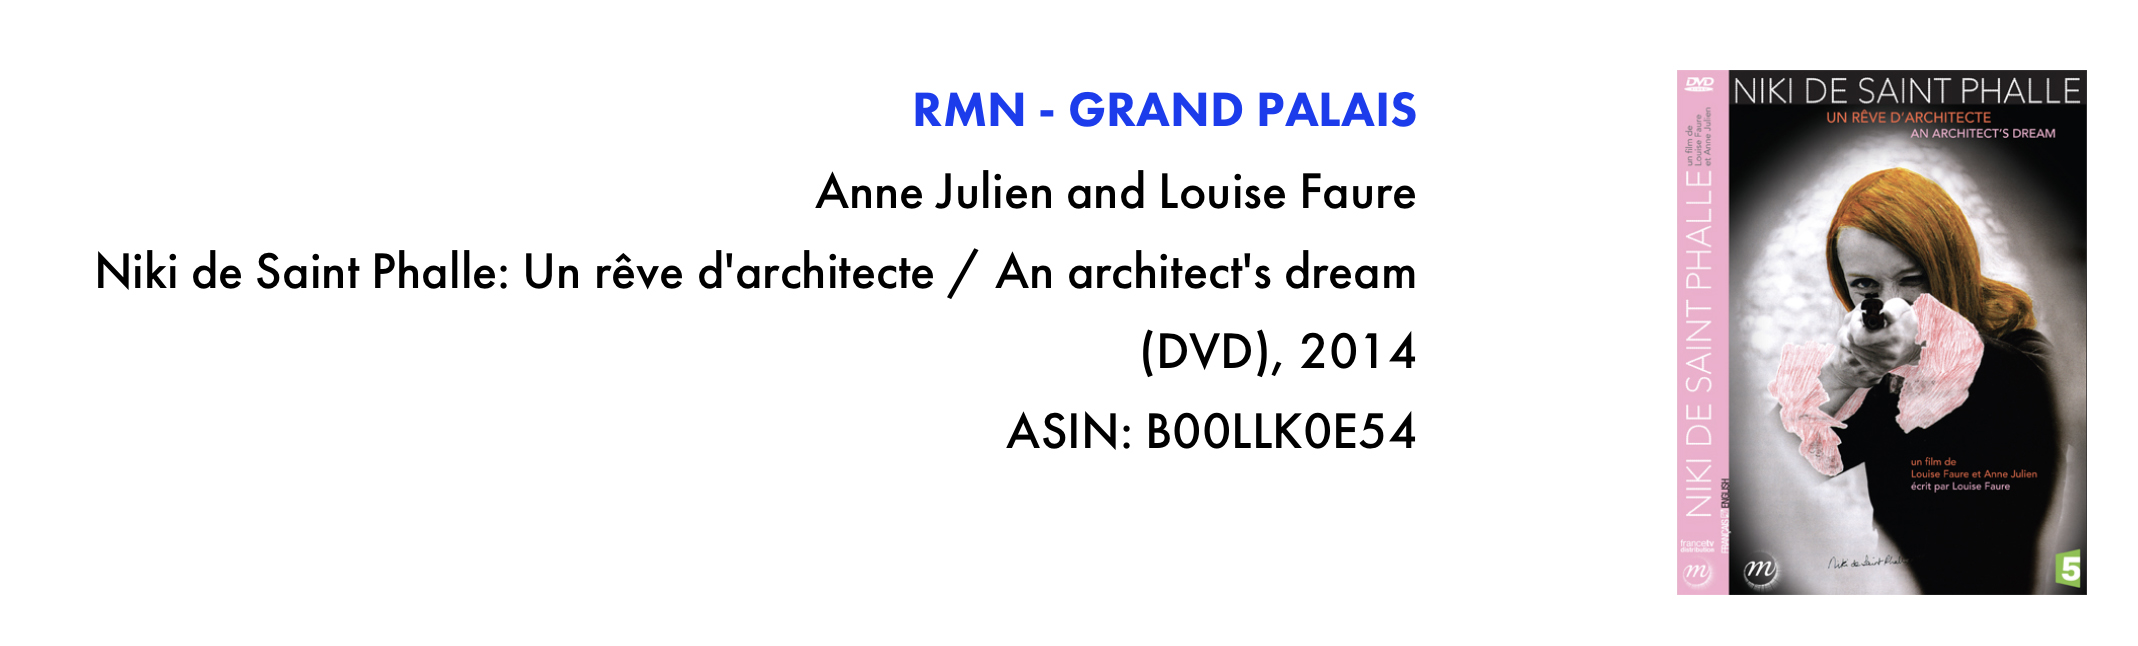 RMN Grand Palais. DVD titled Niki de Saint Phalle: An Architect's dream from 2014. ASIN number for purchase: B00LLK054